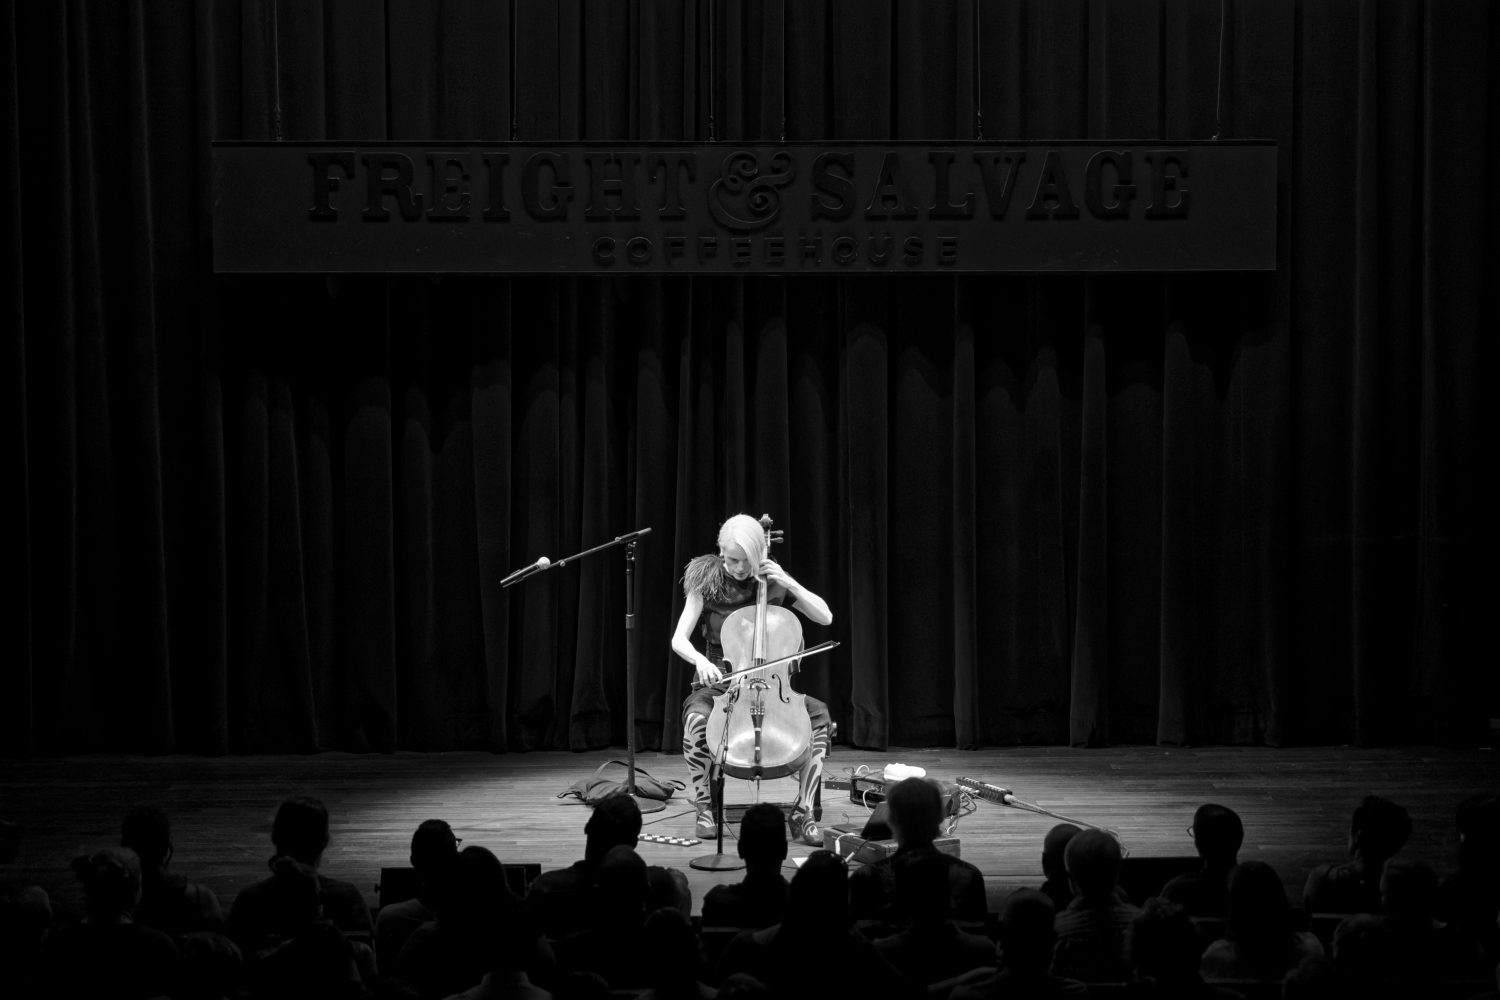 20190609 24 Freight & Salvage - Zoe Keating by Jon Bauer.jpg